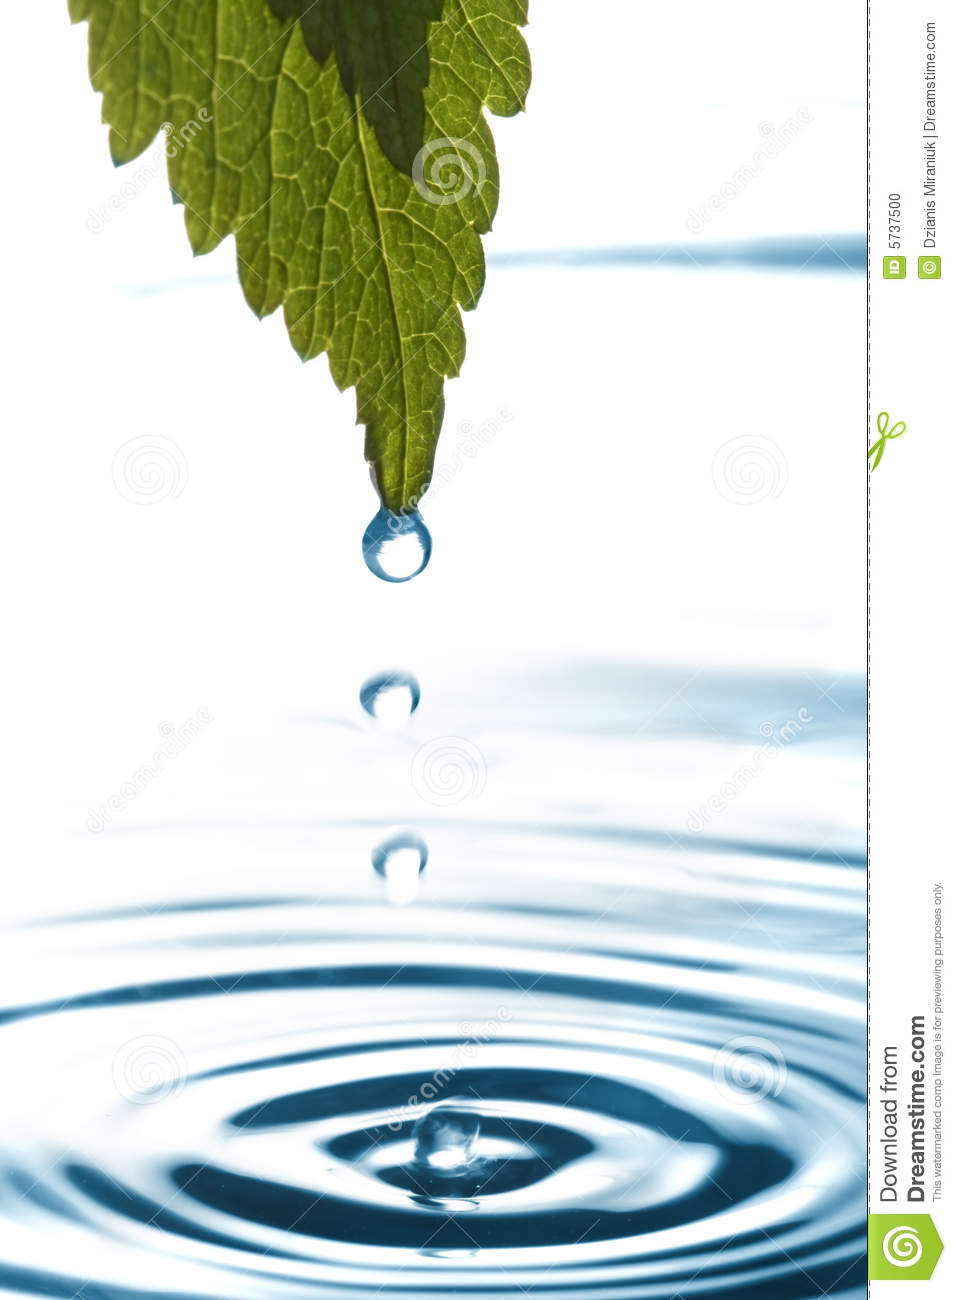 Water Dripping Of A Leaf Stock Photo  Image 5737500. Glass Wall Living Room. The W Living Room. Comfy Chairs For Living Room. American Freight Living Room Sets. Deer Themed Living Room. Value City Living Room Tables. Cheap Decorating Ideas For Living Room Walls. Matching Chairs For Living Room